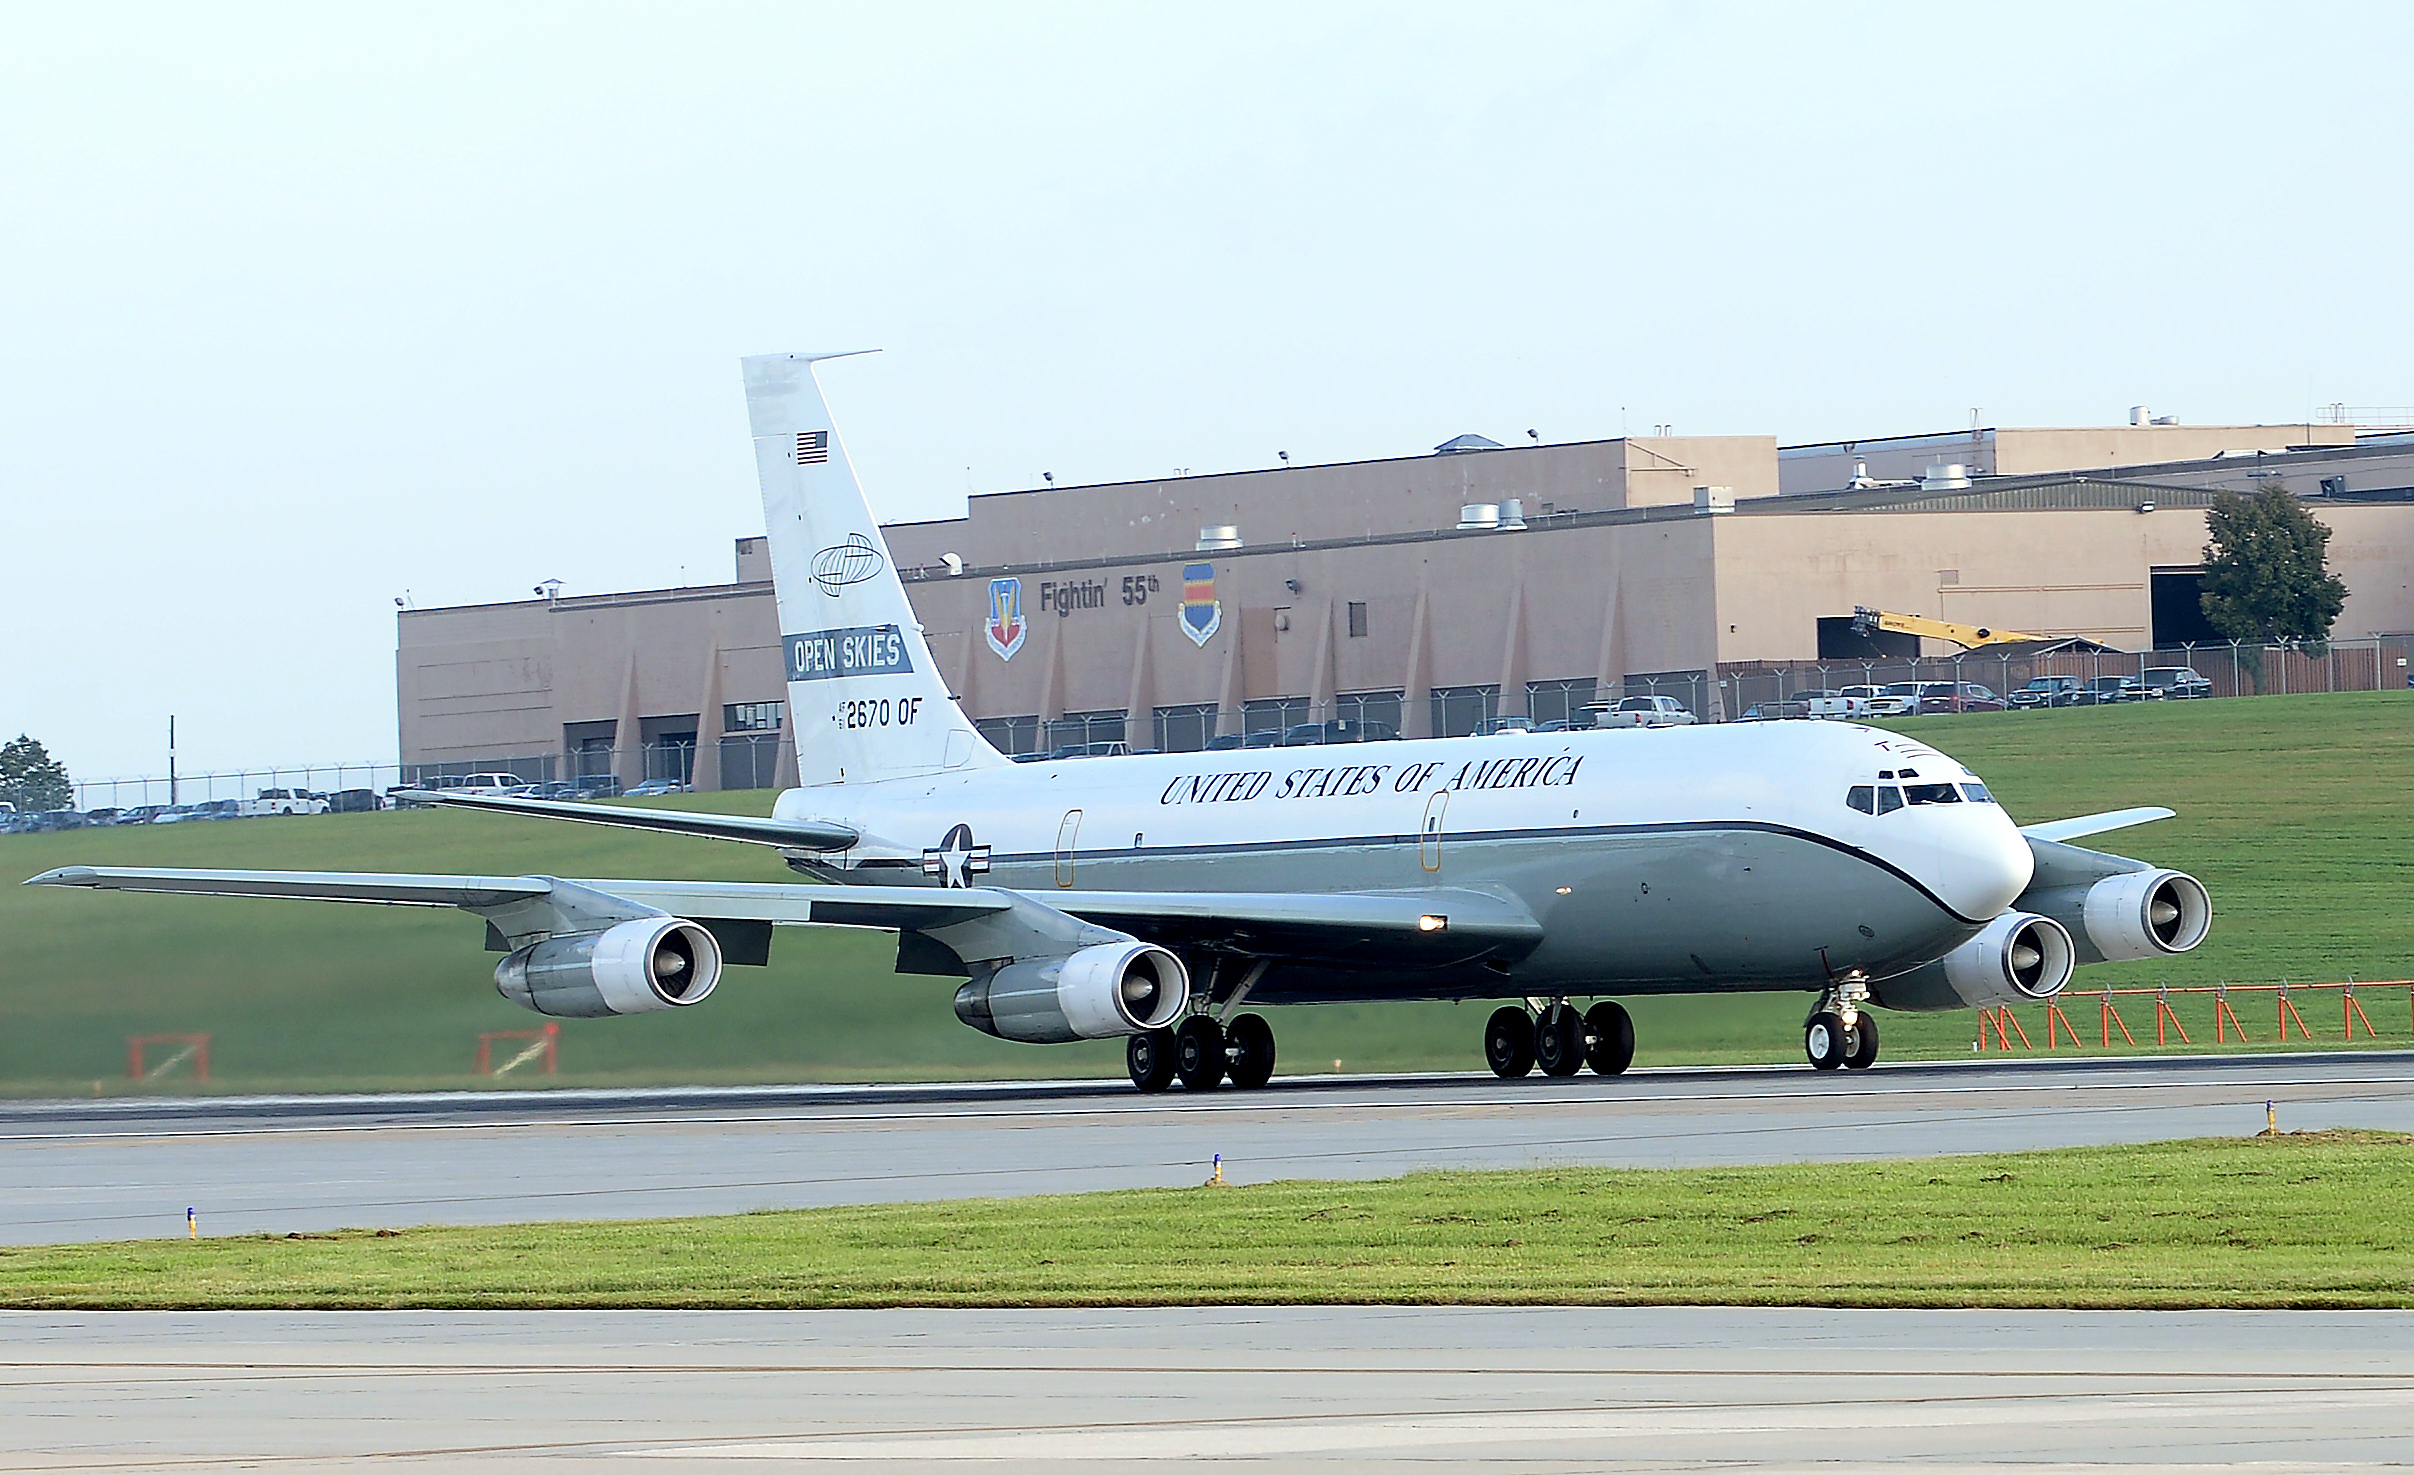 An OC-135 Open Skies aircraft takes off Sept. 14, 2018 from the flight line at Offutt Air Force Base, Neb. (Charles J. Haymond/U.S. Air Force)